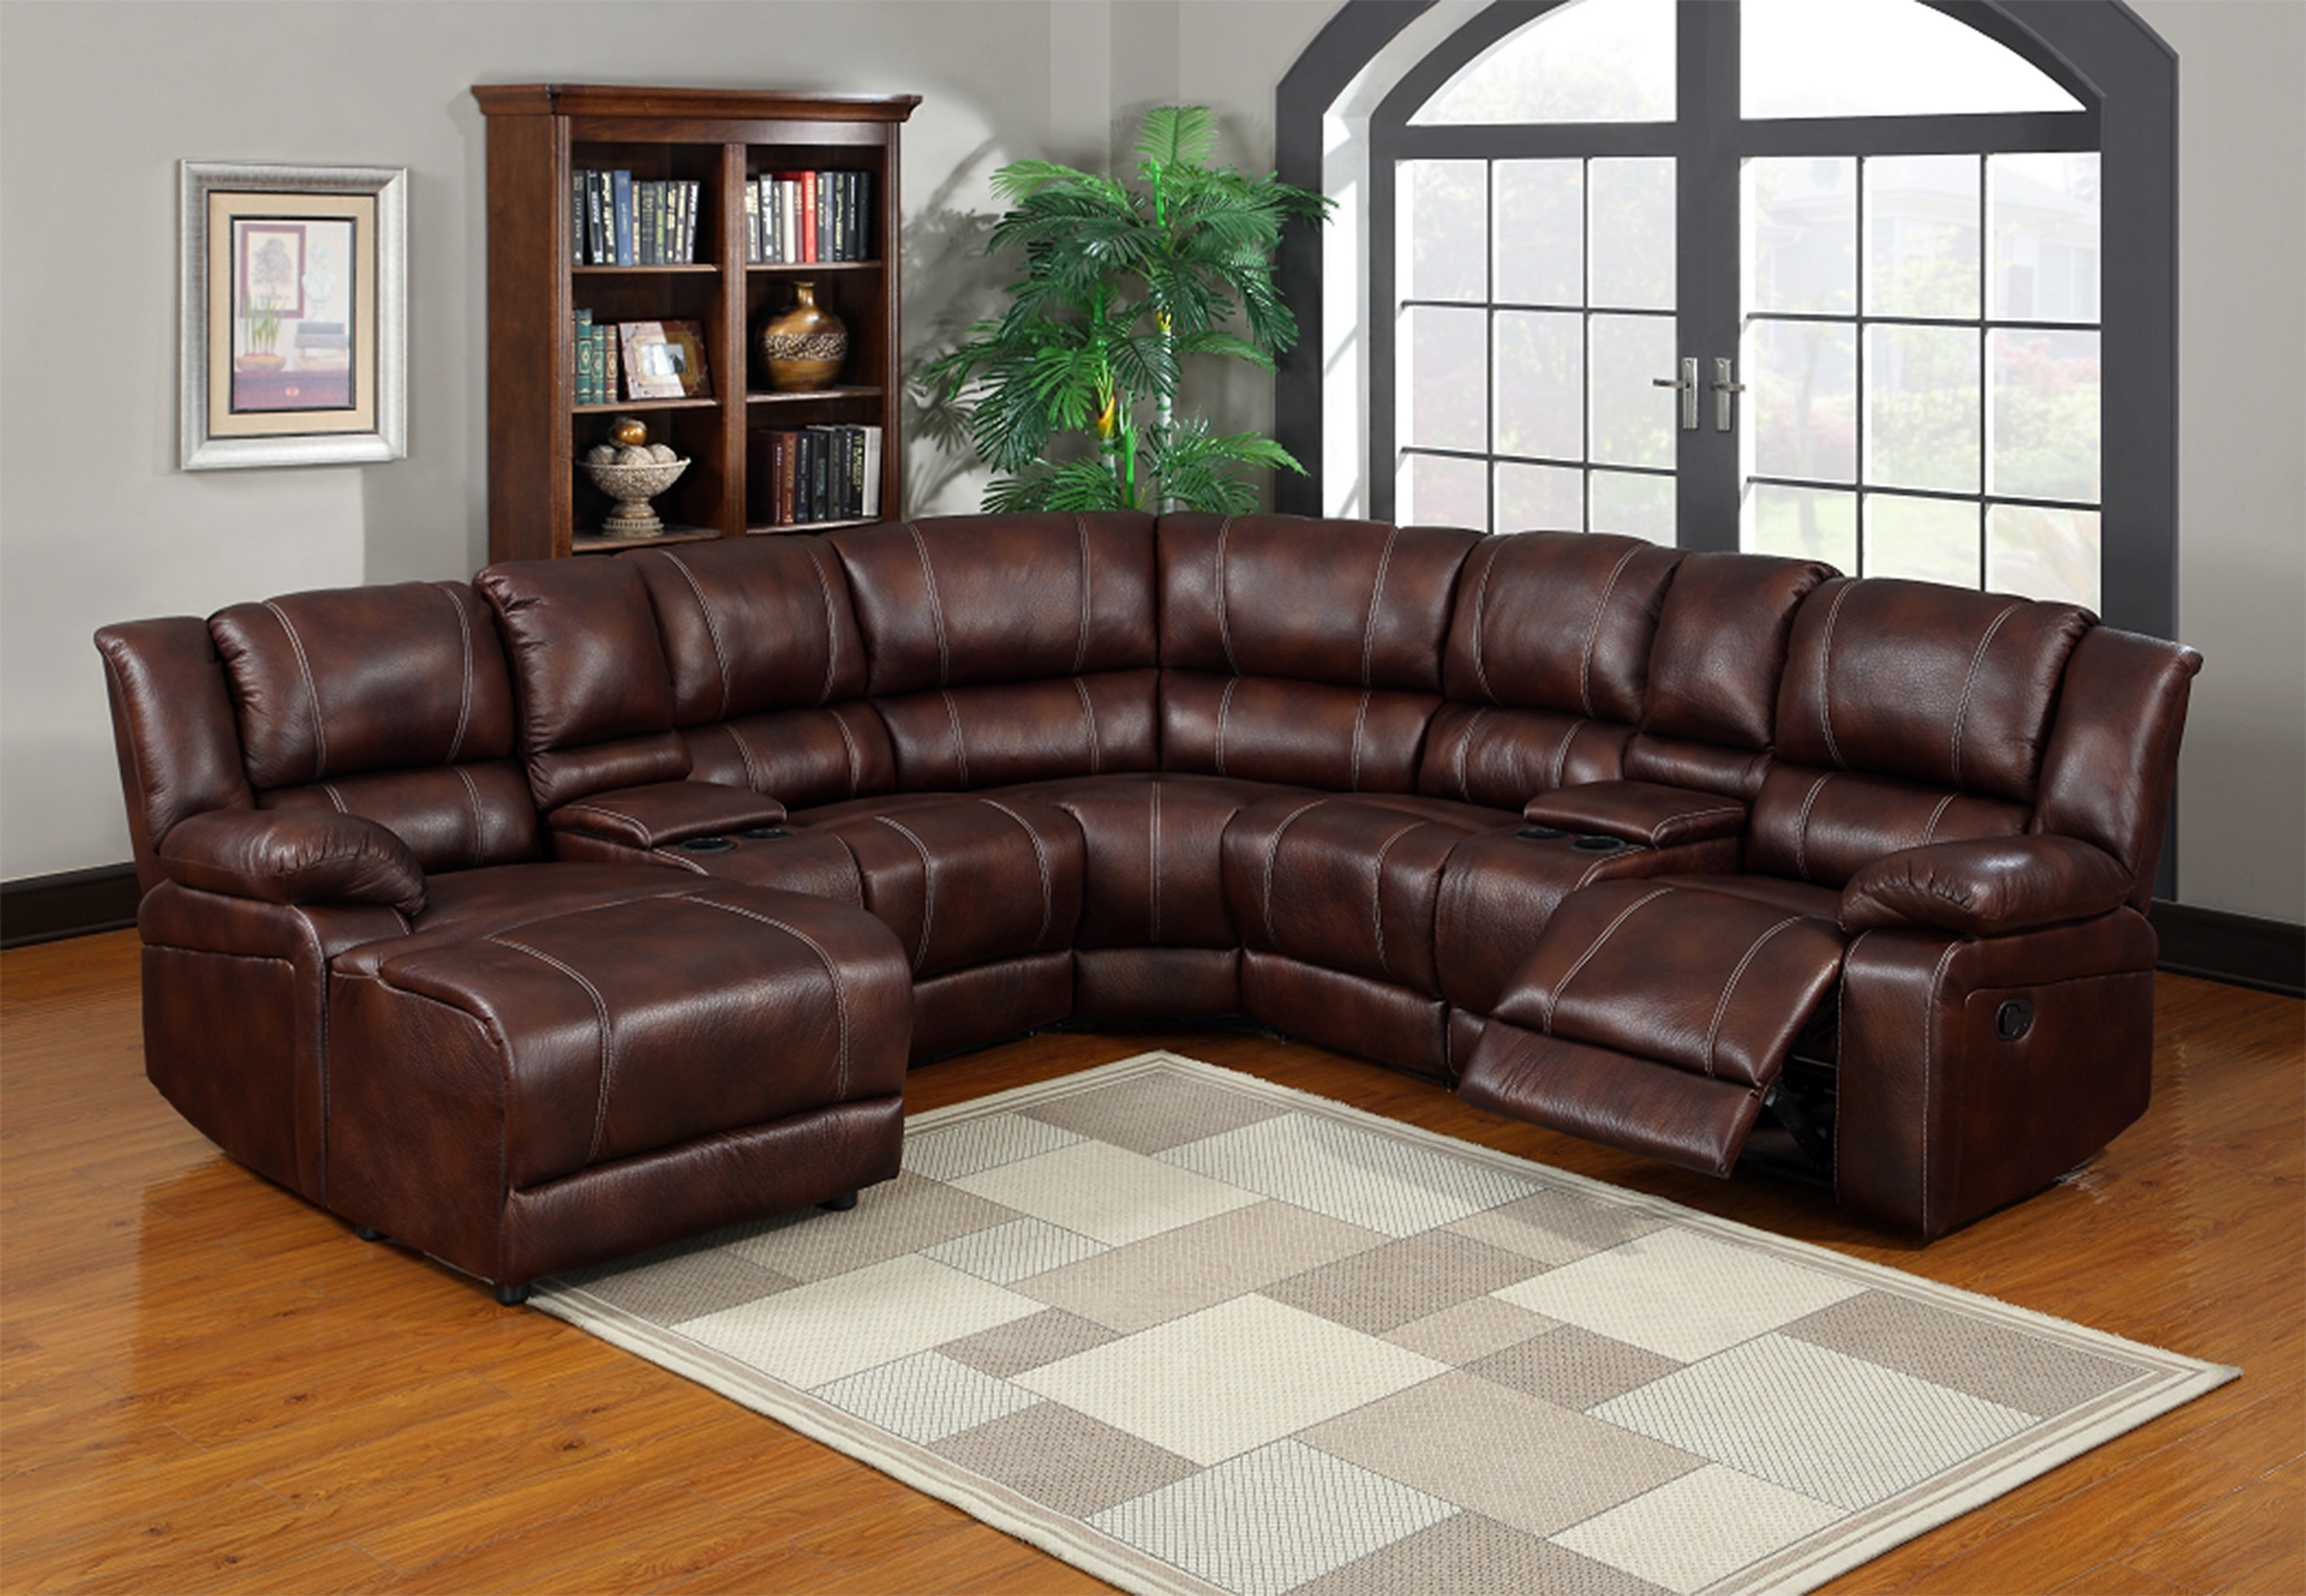 Well known Leather Motion Sectional Sofas intended for Leather Motion Sectional Sofa - Home And Textiles